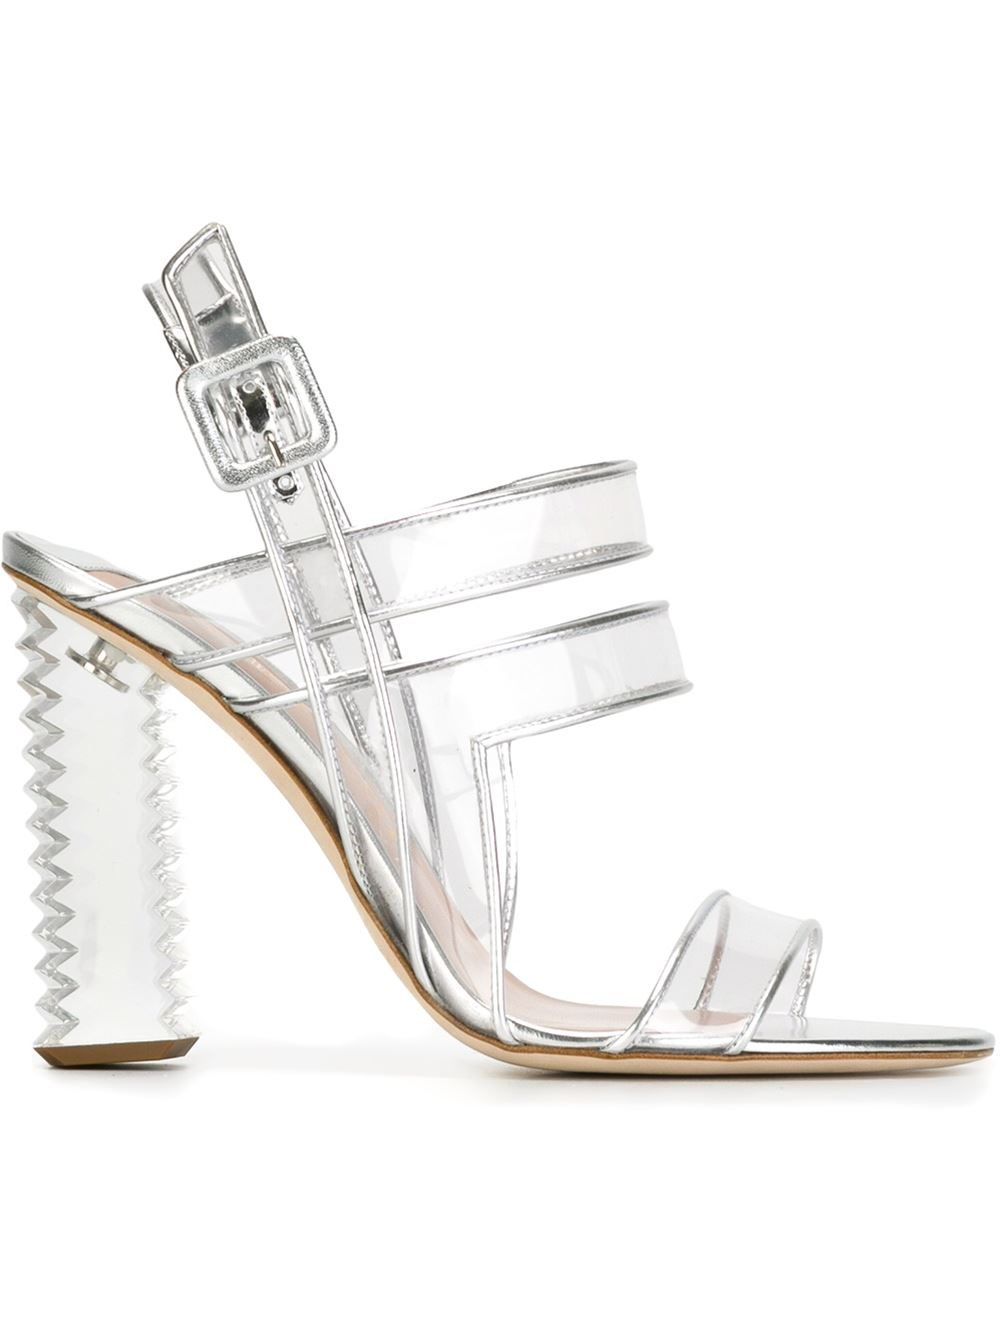 APERLAI Clear strappy sandals, FarFetch.com